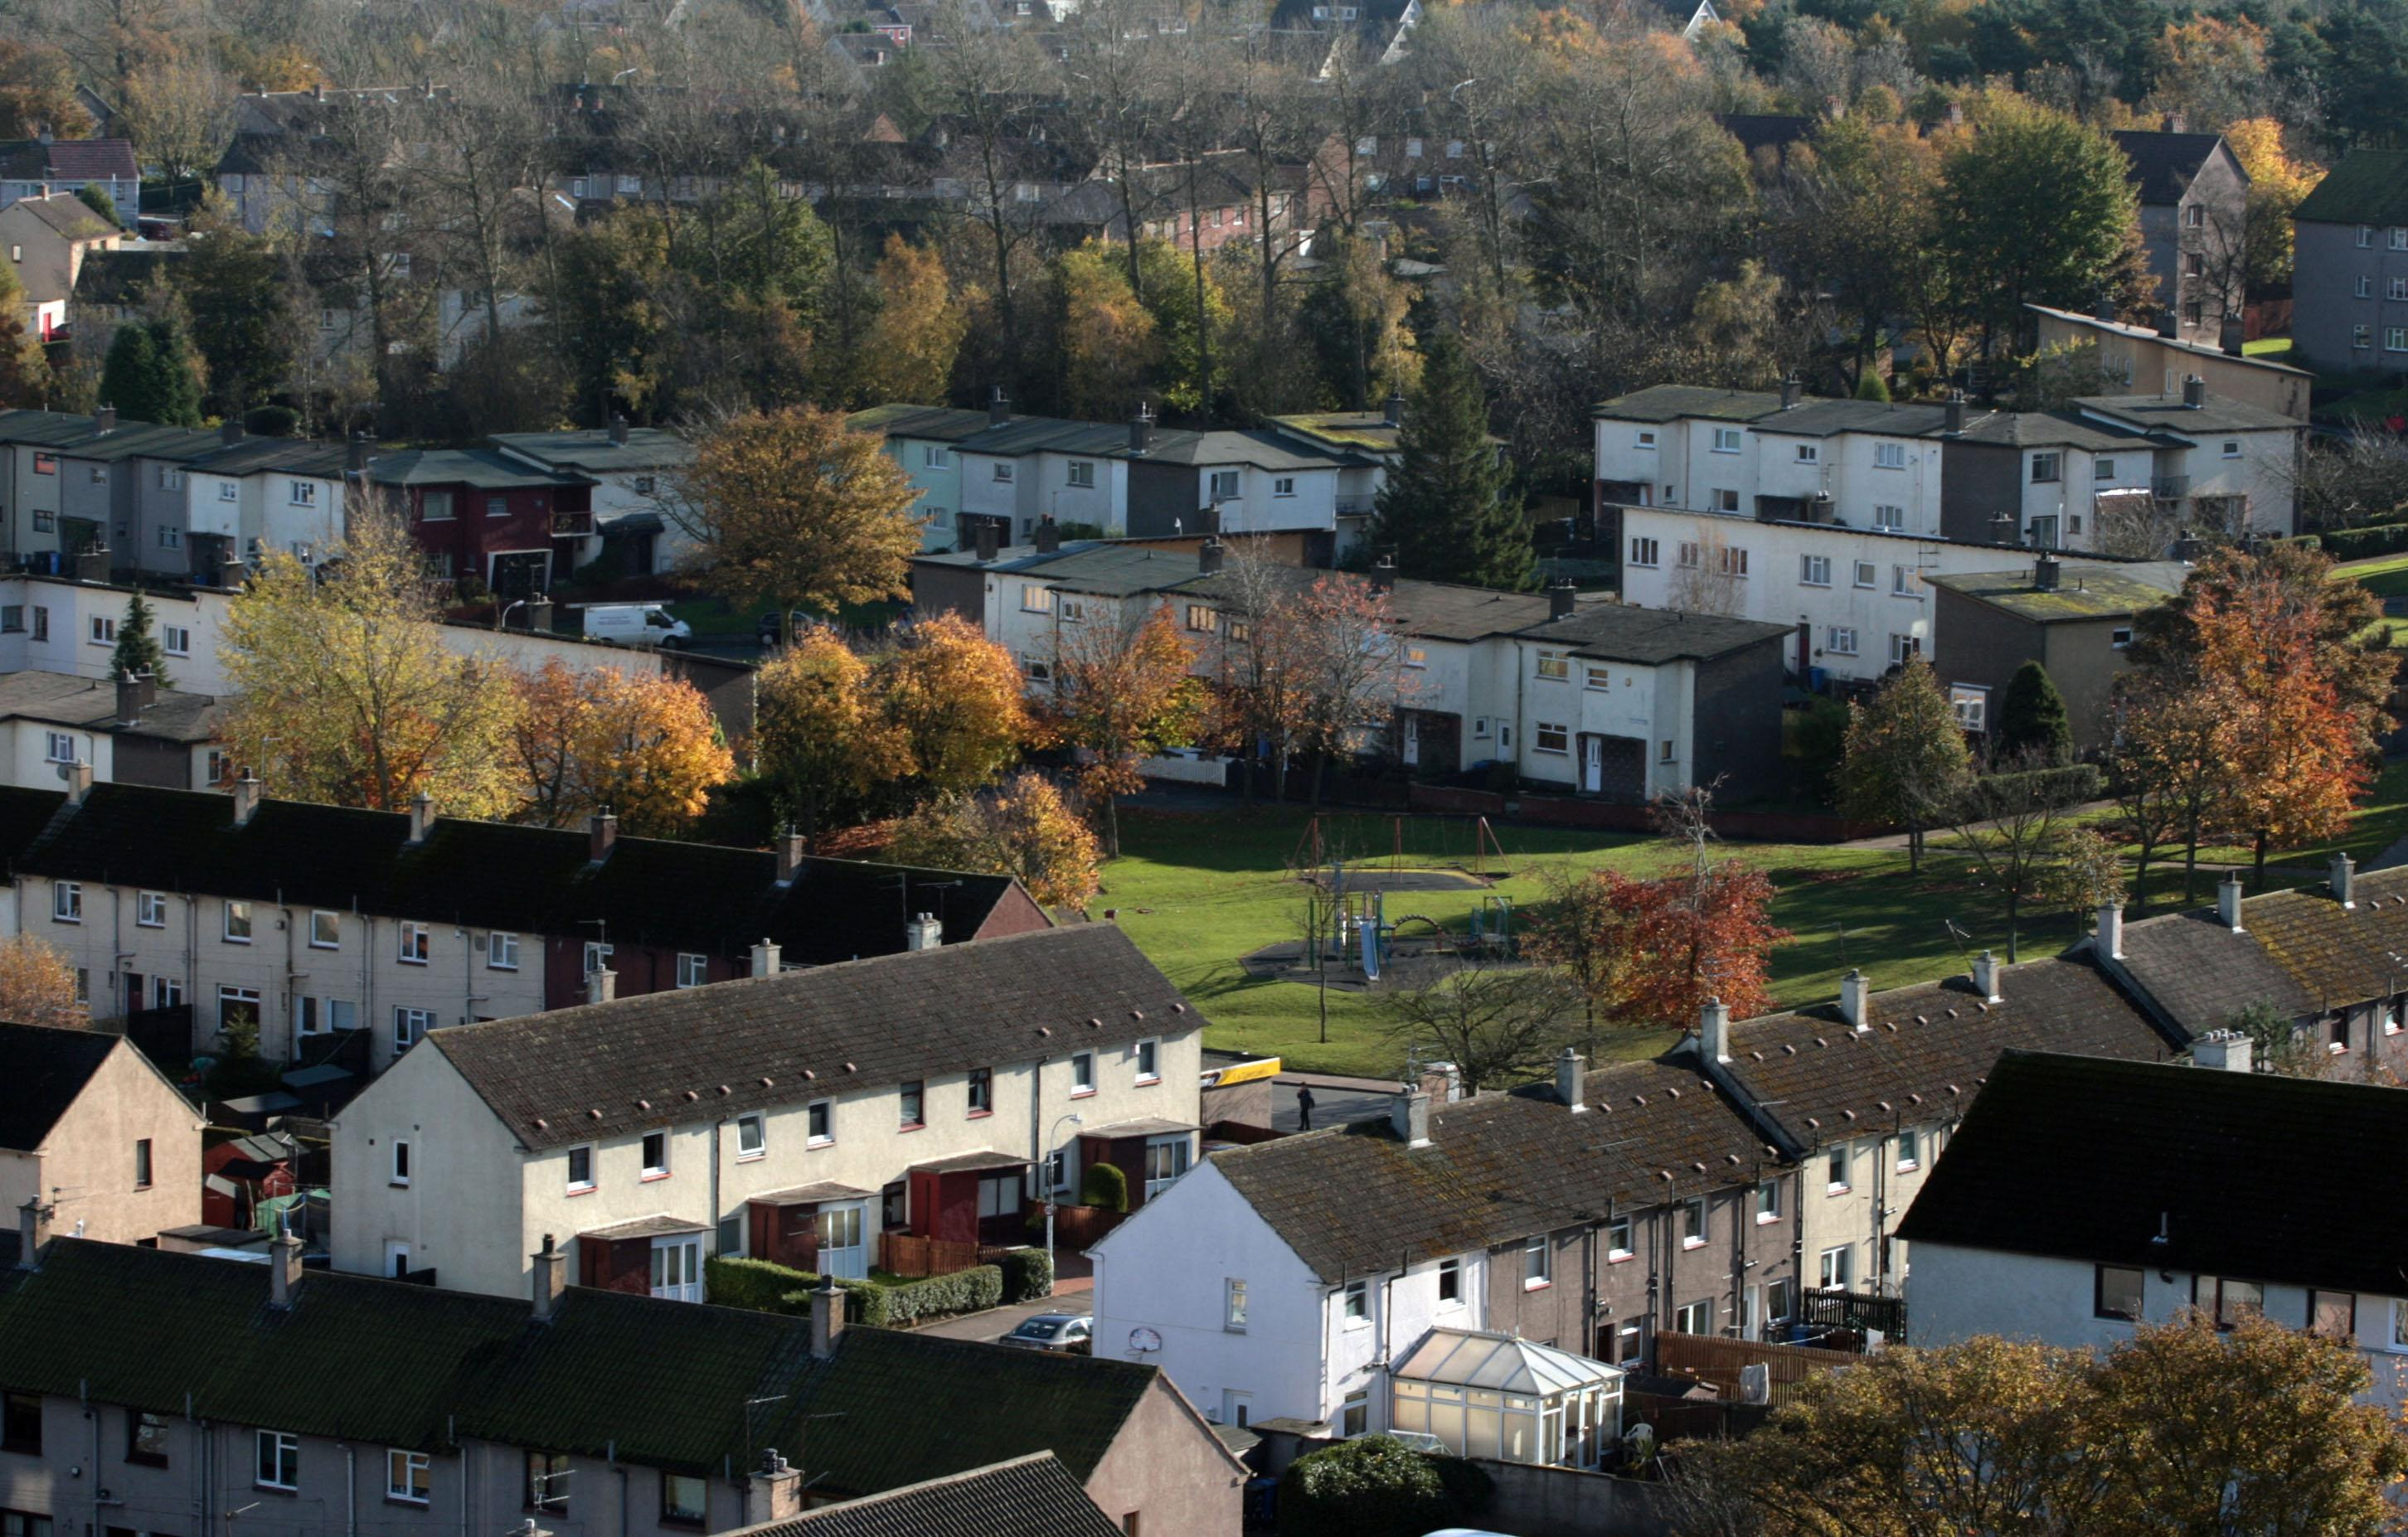 Glenrothes will be 70 years old in 2018.